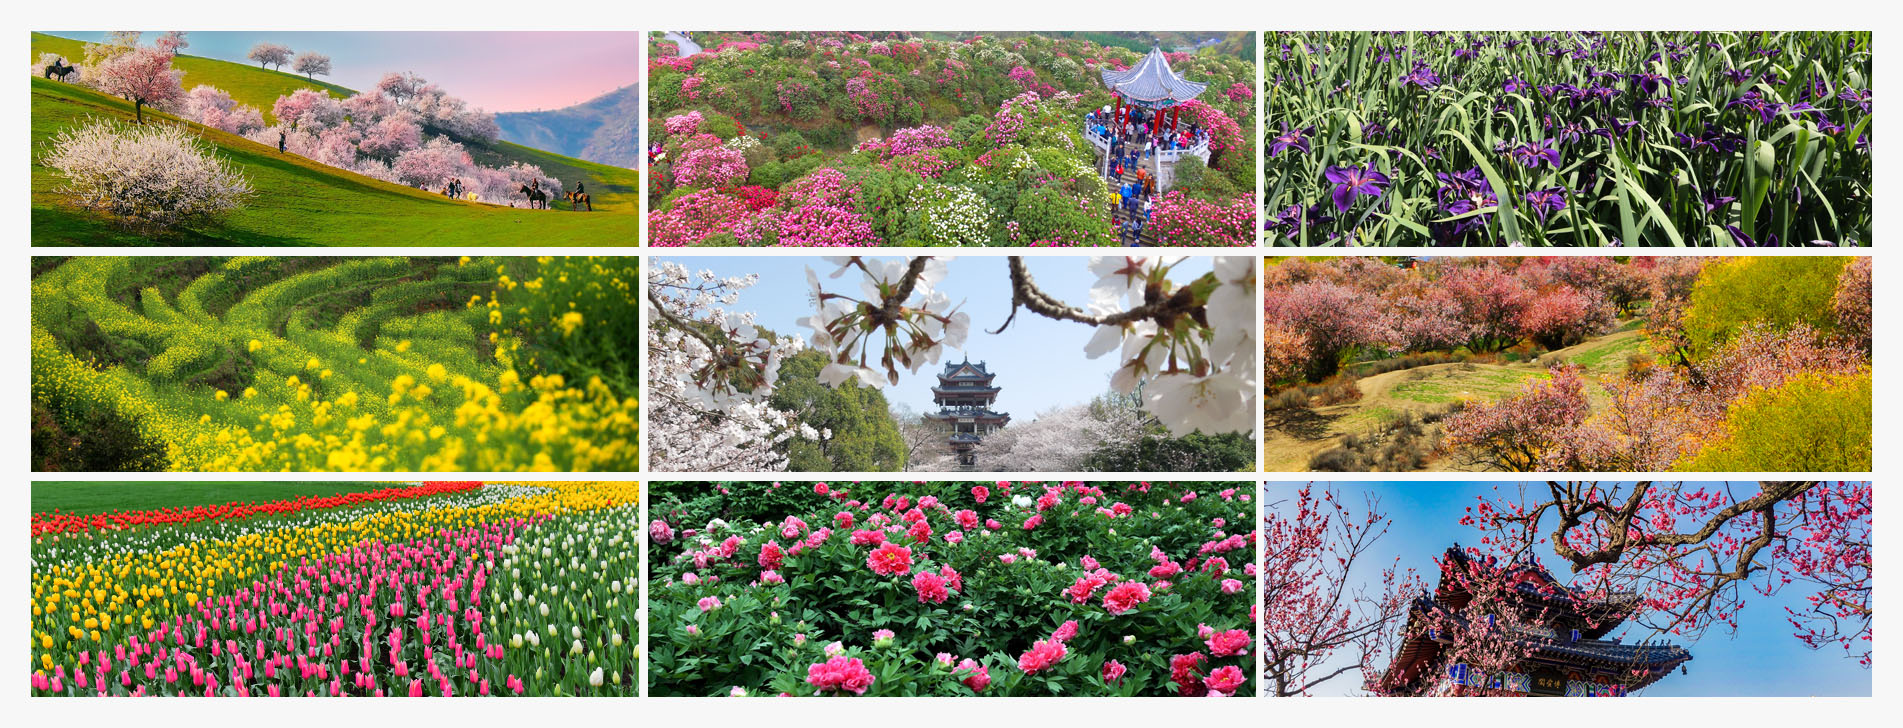 Spring delight: 9 recommended destinations to see blossom in China